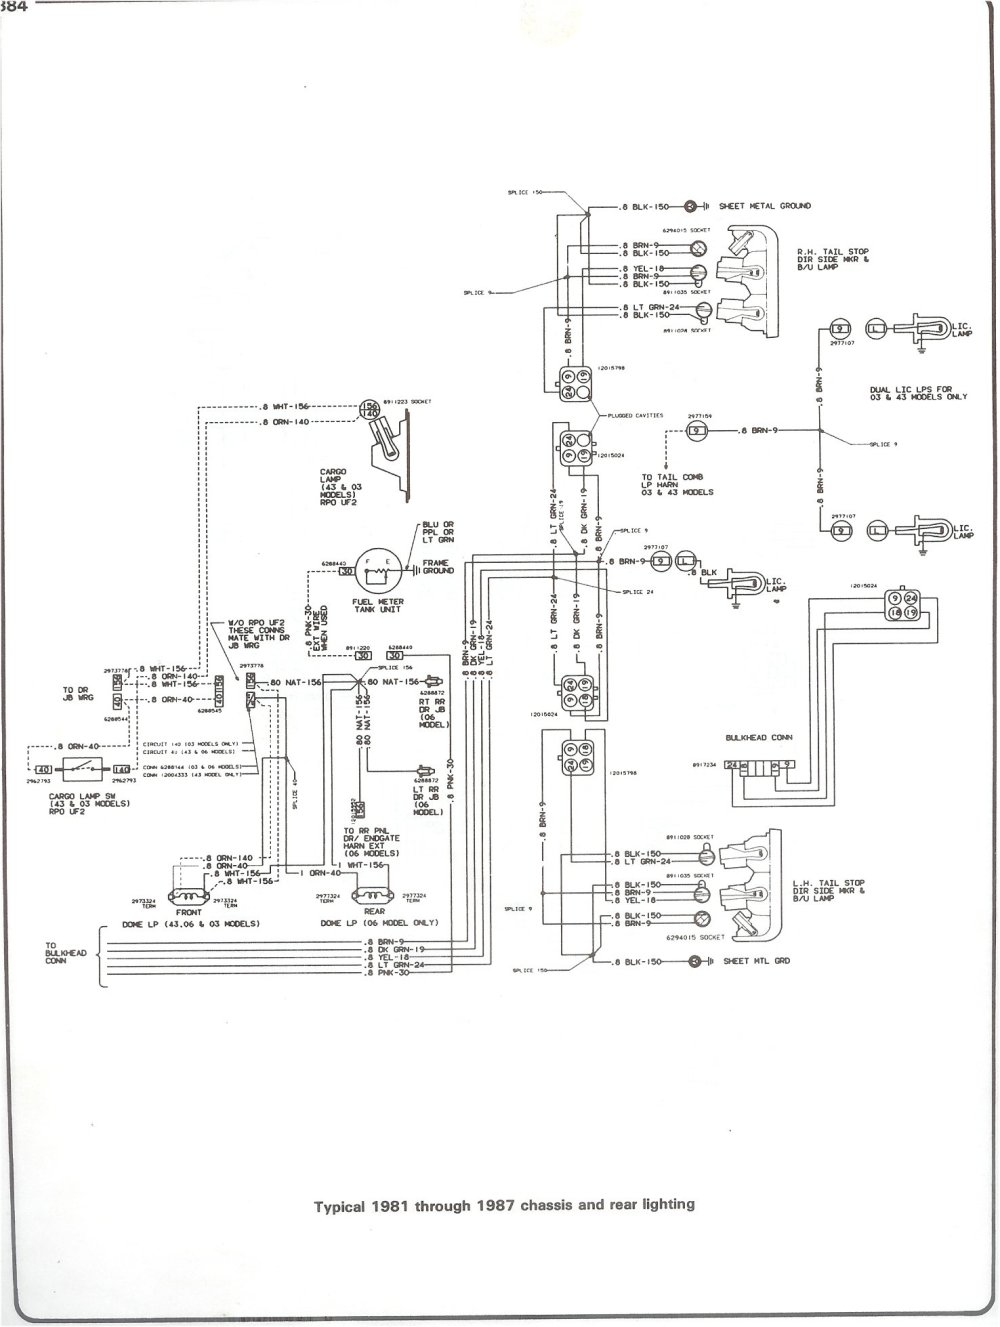 medium resolution of 81 87 chassis and rear lighting complete 73 87 wiring diagrams